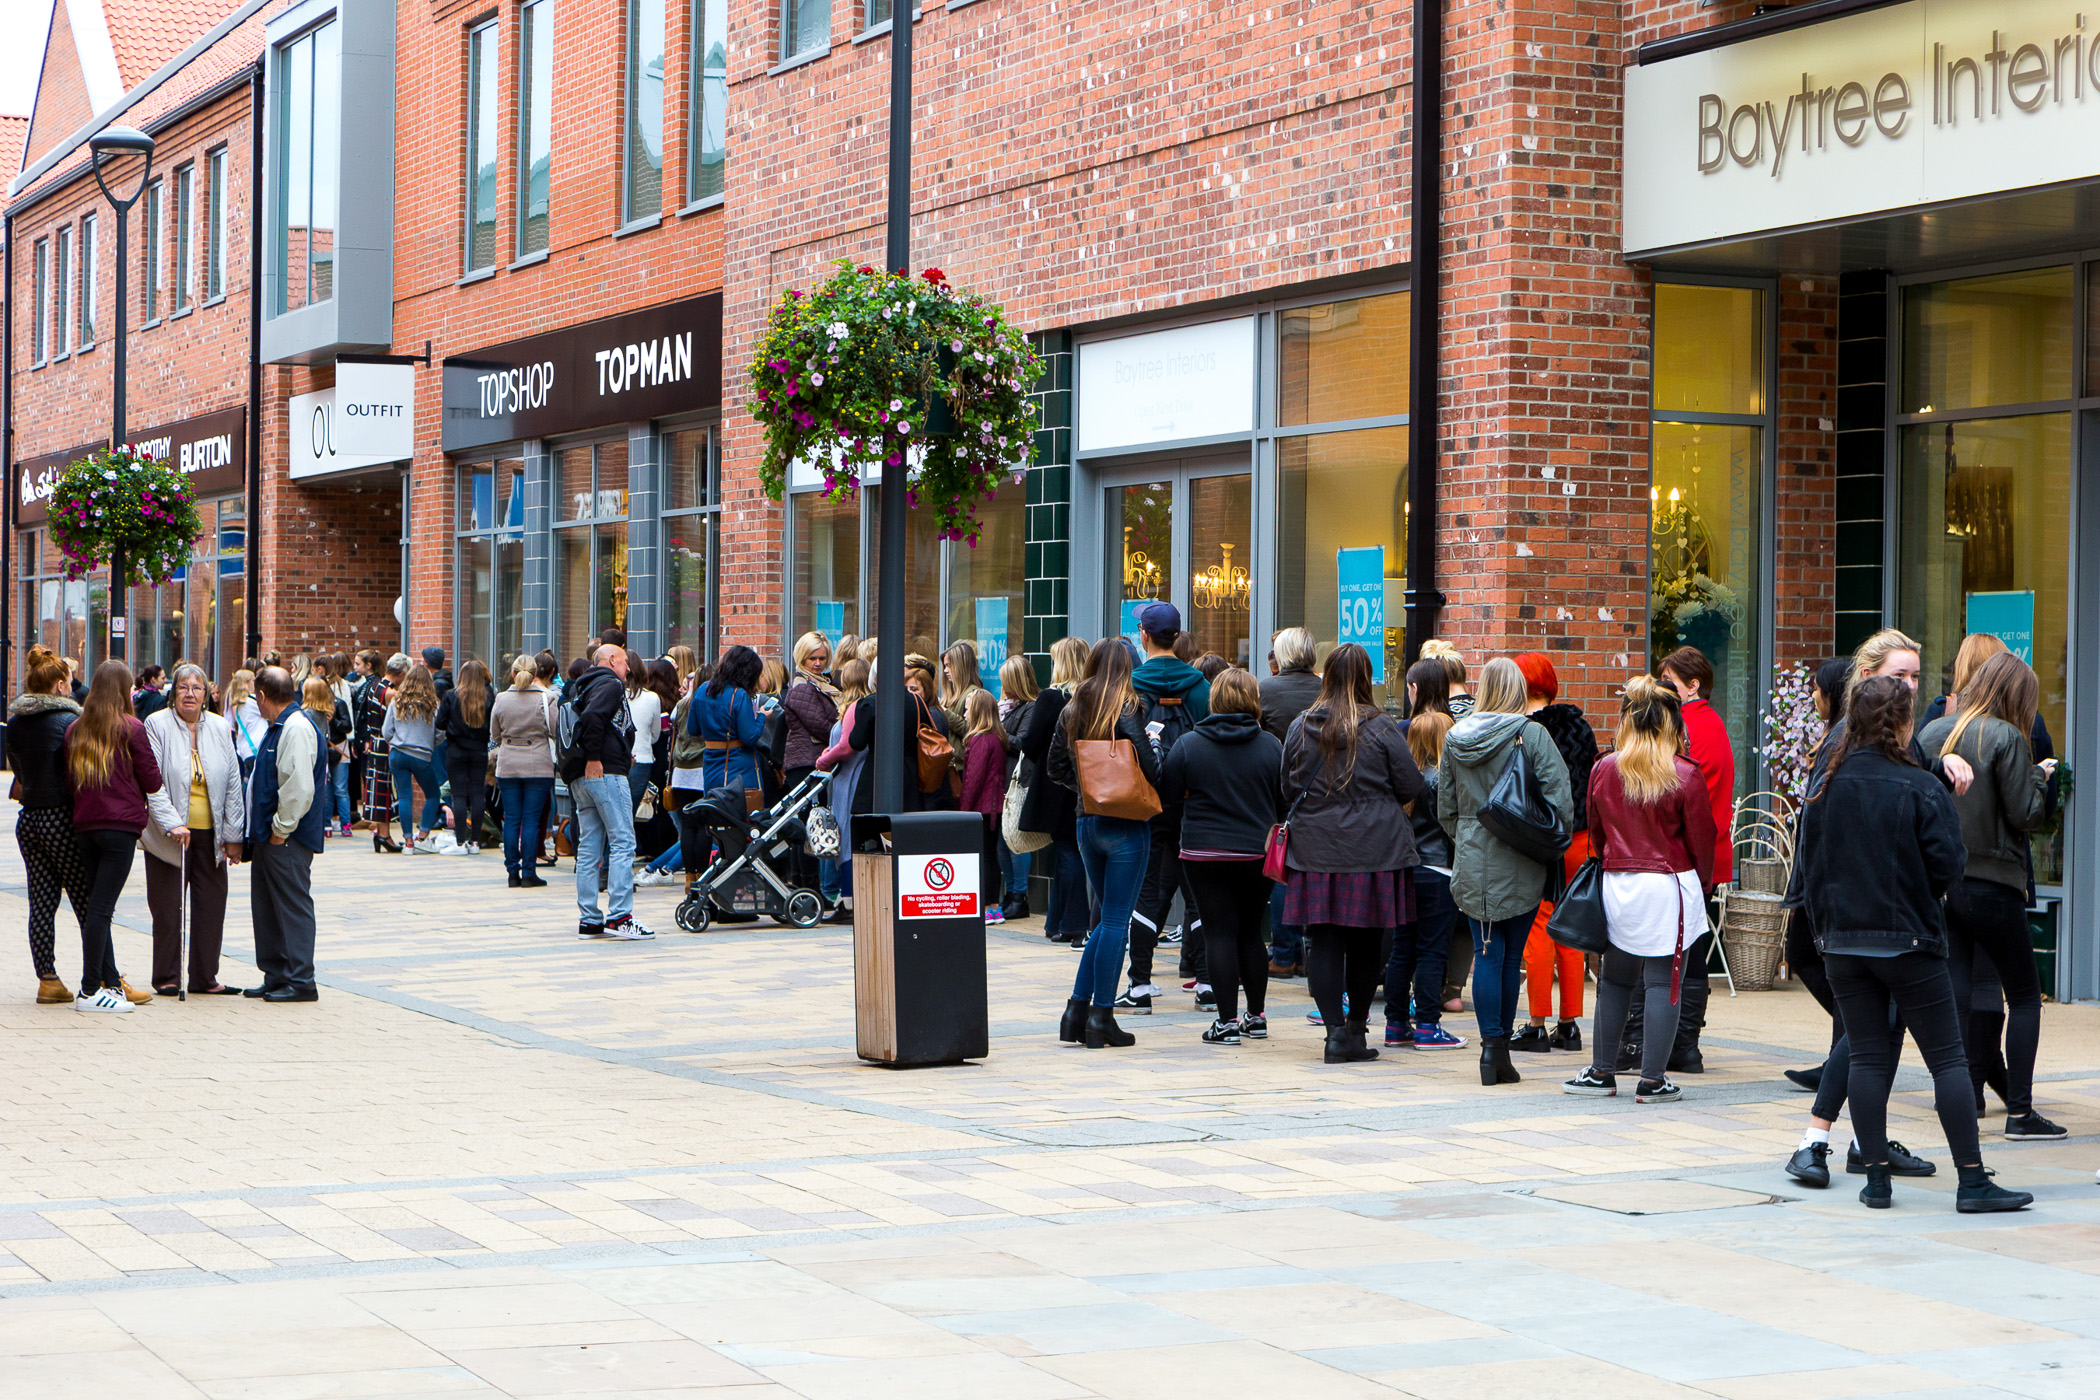 Shoppers Queue To Experience New Outfit Store At Flemingate - Yorkshire Business Daily